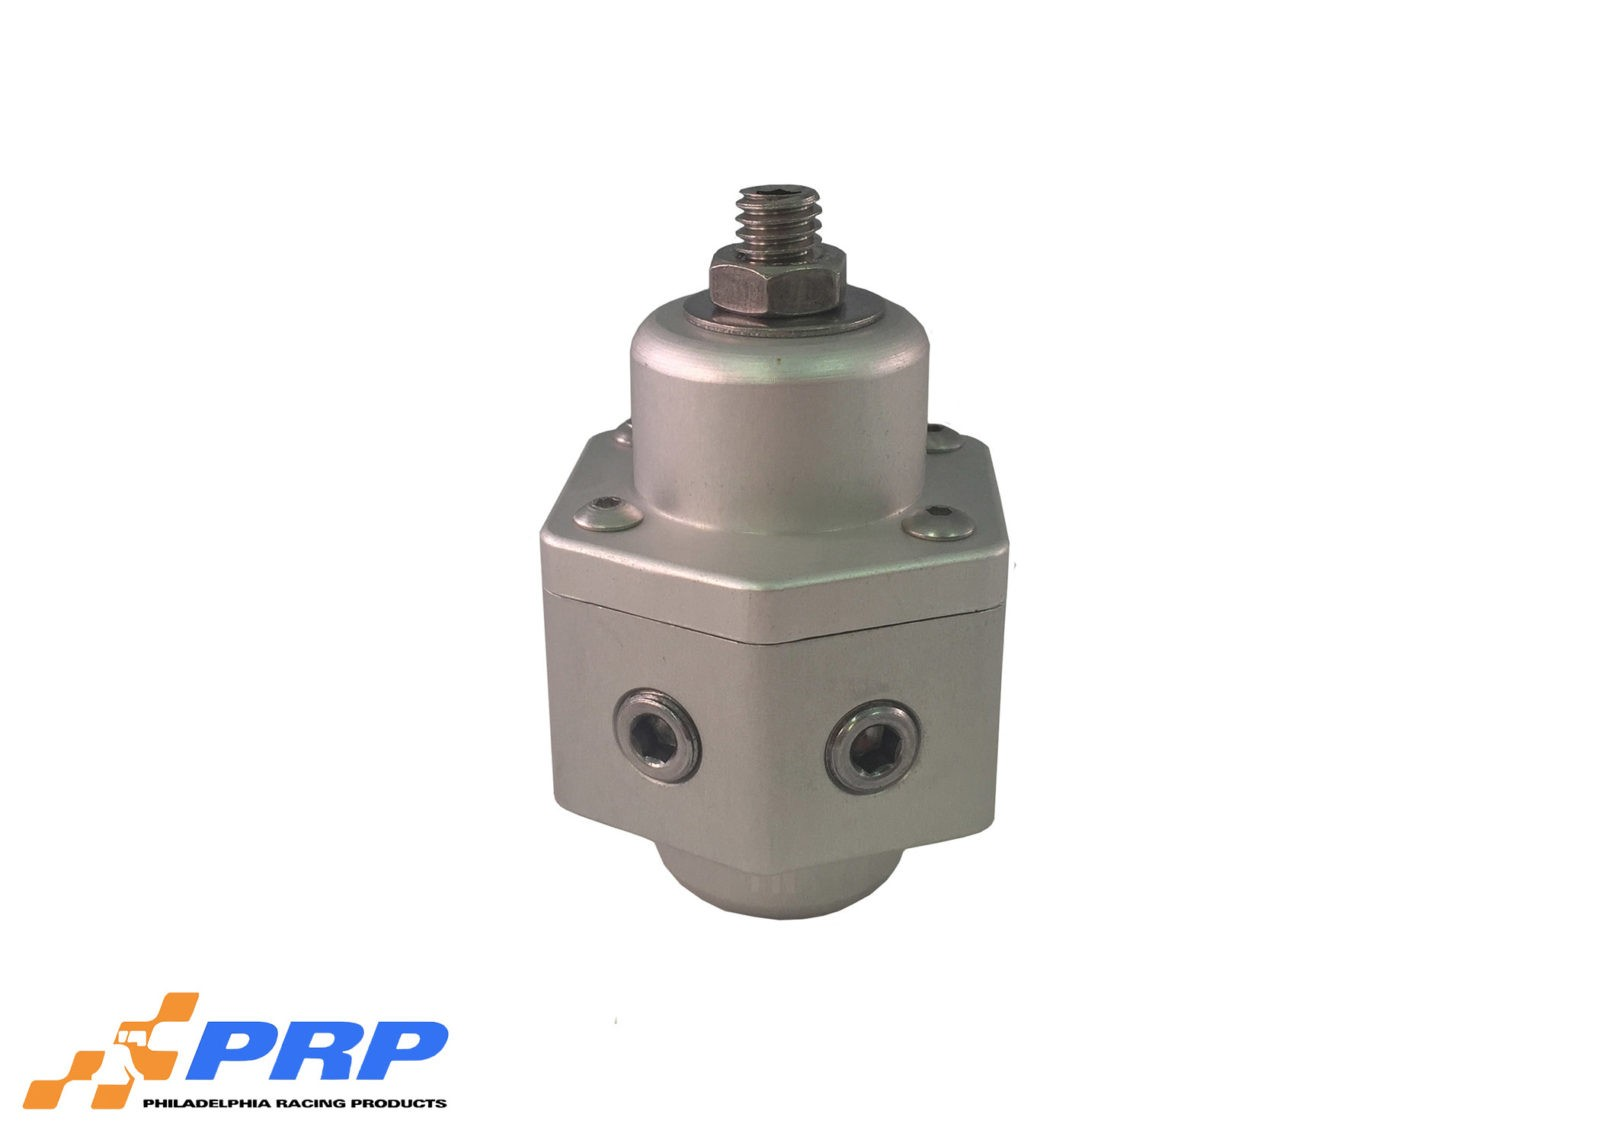 Clear Fuel Pressure Regulator made by PRP Racing Products Main Picture front-top view